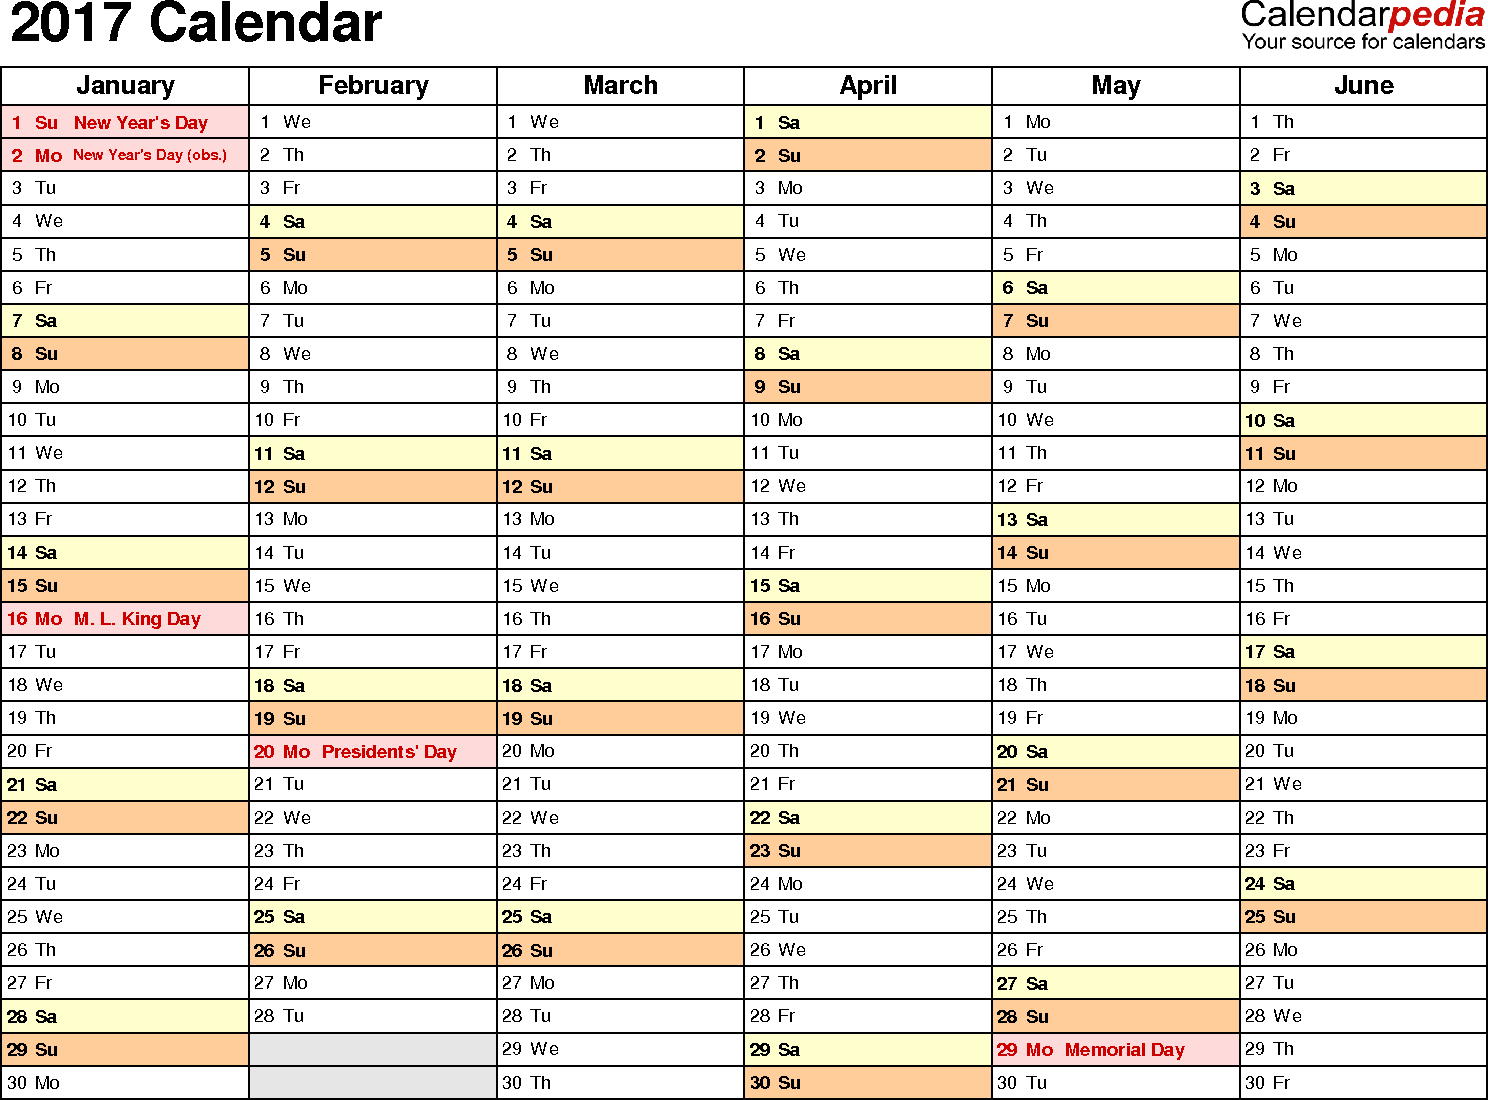 Ediblewildsus  Sweet  Calendar  Download  Free Printable Excel Templates Xls With Extraordinary Template   Calendar For Excel Months Horizontally  Pages Landscape Orientation With Astounding Convert Pdf To Excel Free Download Also Excel Column Comparison In Addition Excel Vba Guide And Excel Vba Open As Well As Exponential Growth Excel Additionally Word To Excel Converter Free From Calendarpediacom With Ediblewildsus  Extraordinary  Calendar  Download  Free Printable Excel Templates Xls With Astounding Template   Calendar For Excel Months Horizontally  Pages Landscape Orientation And Sweet Convert Pdf To Excel Free Download Also Excel Column Comparison In Addition Excel Vba Guide From Calendarpediacom